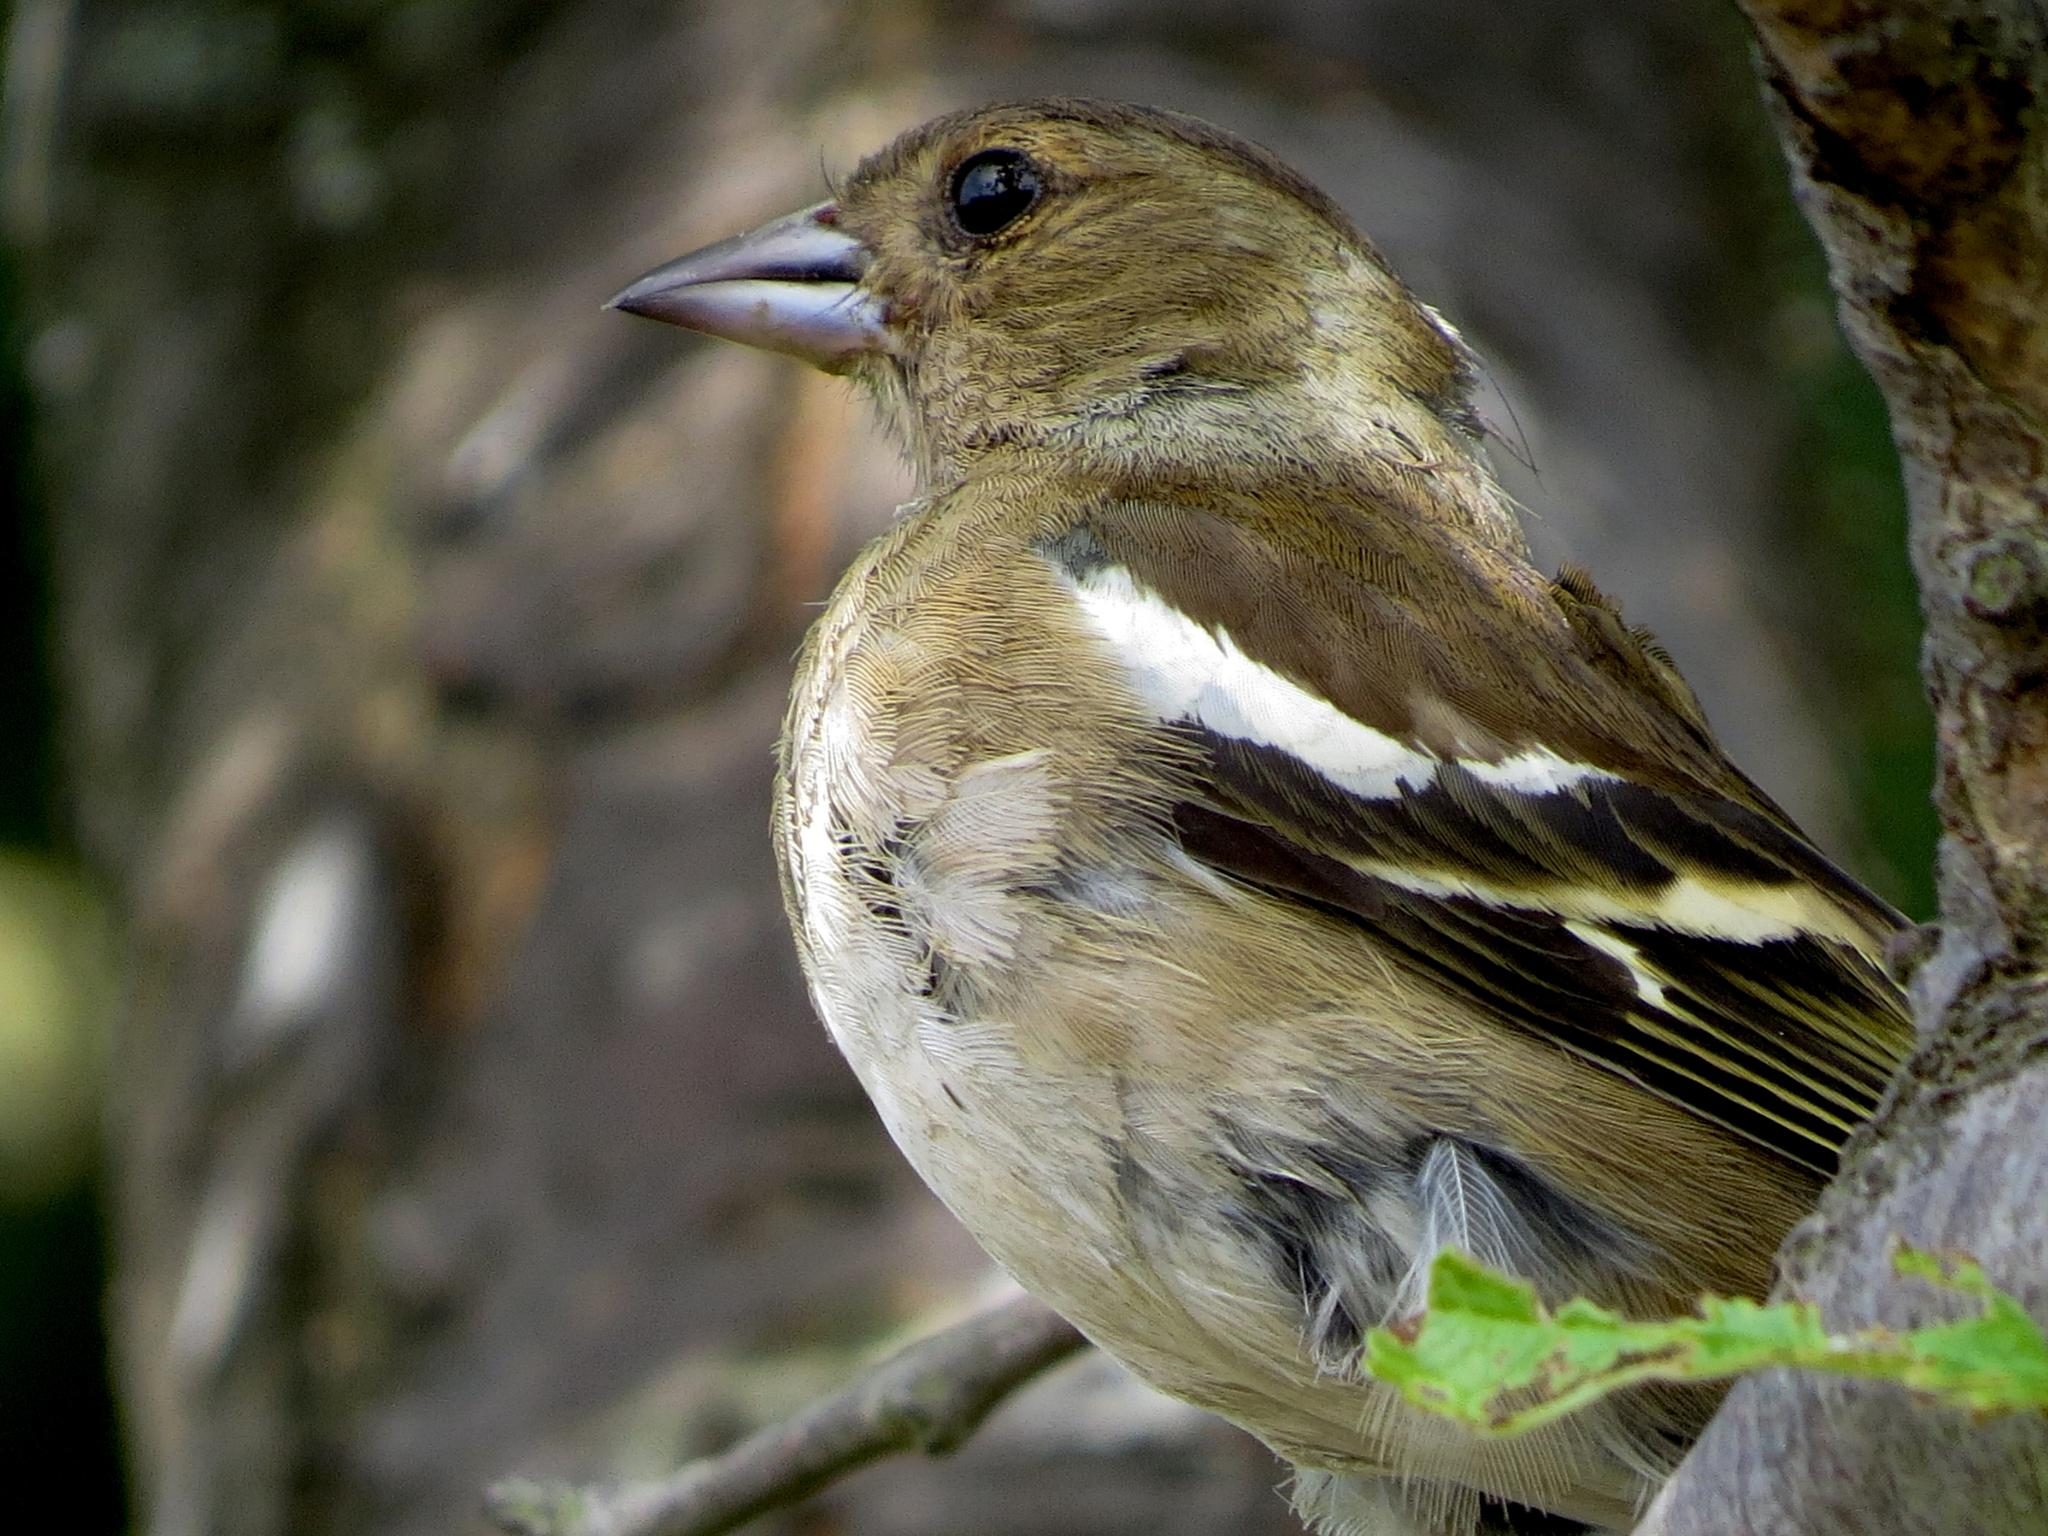 Female Chaffinch by June